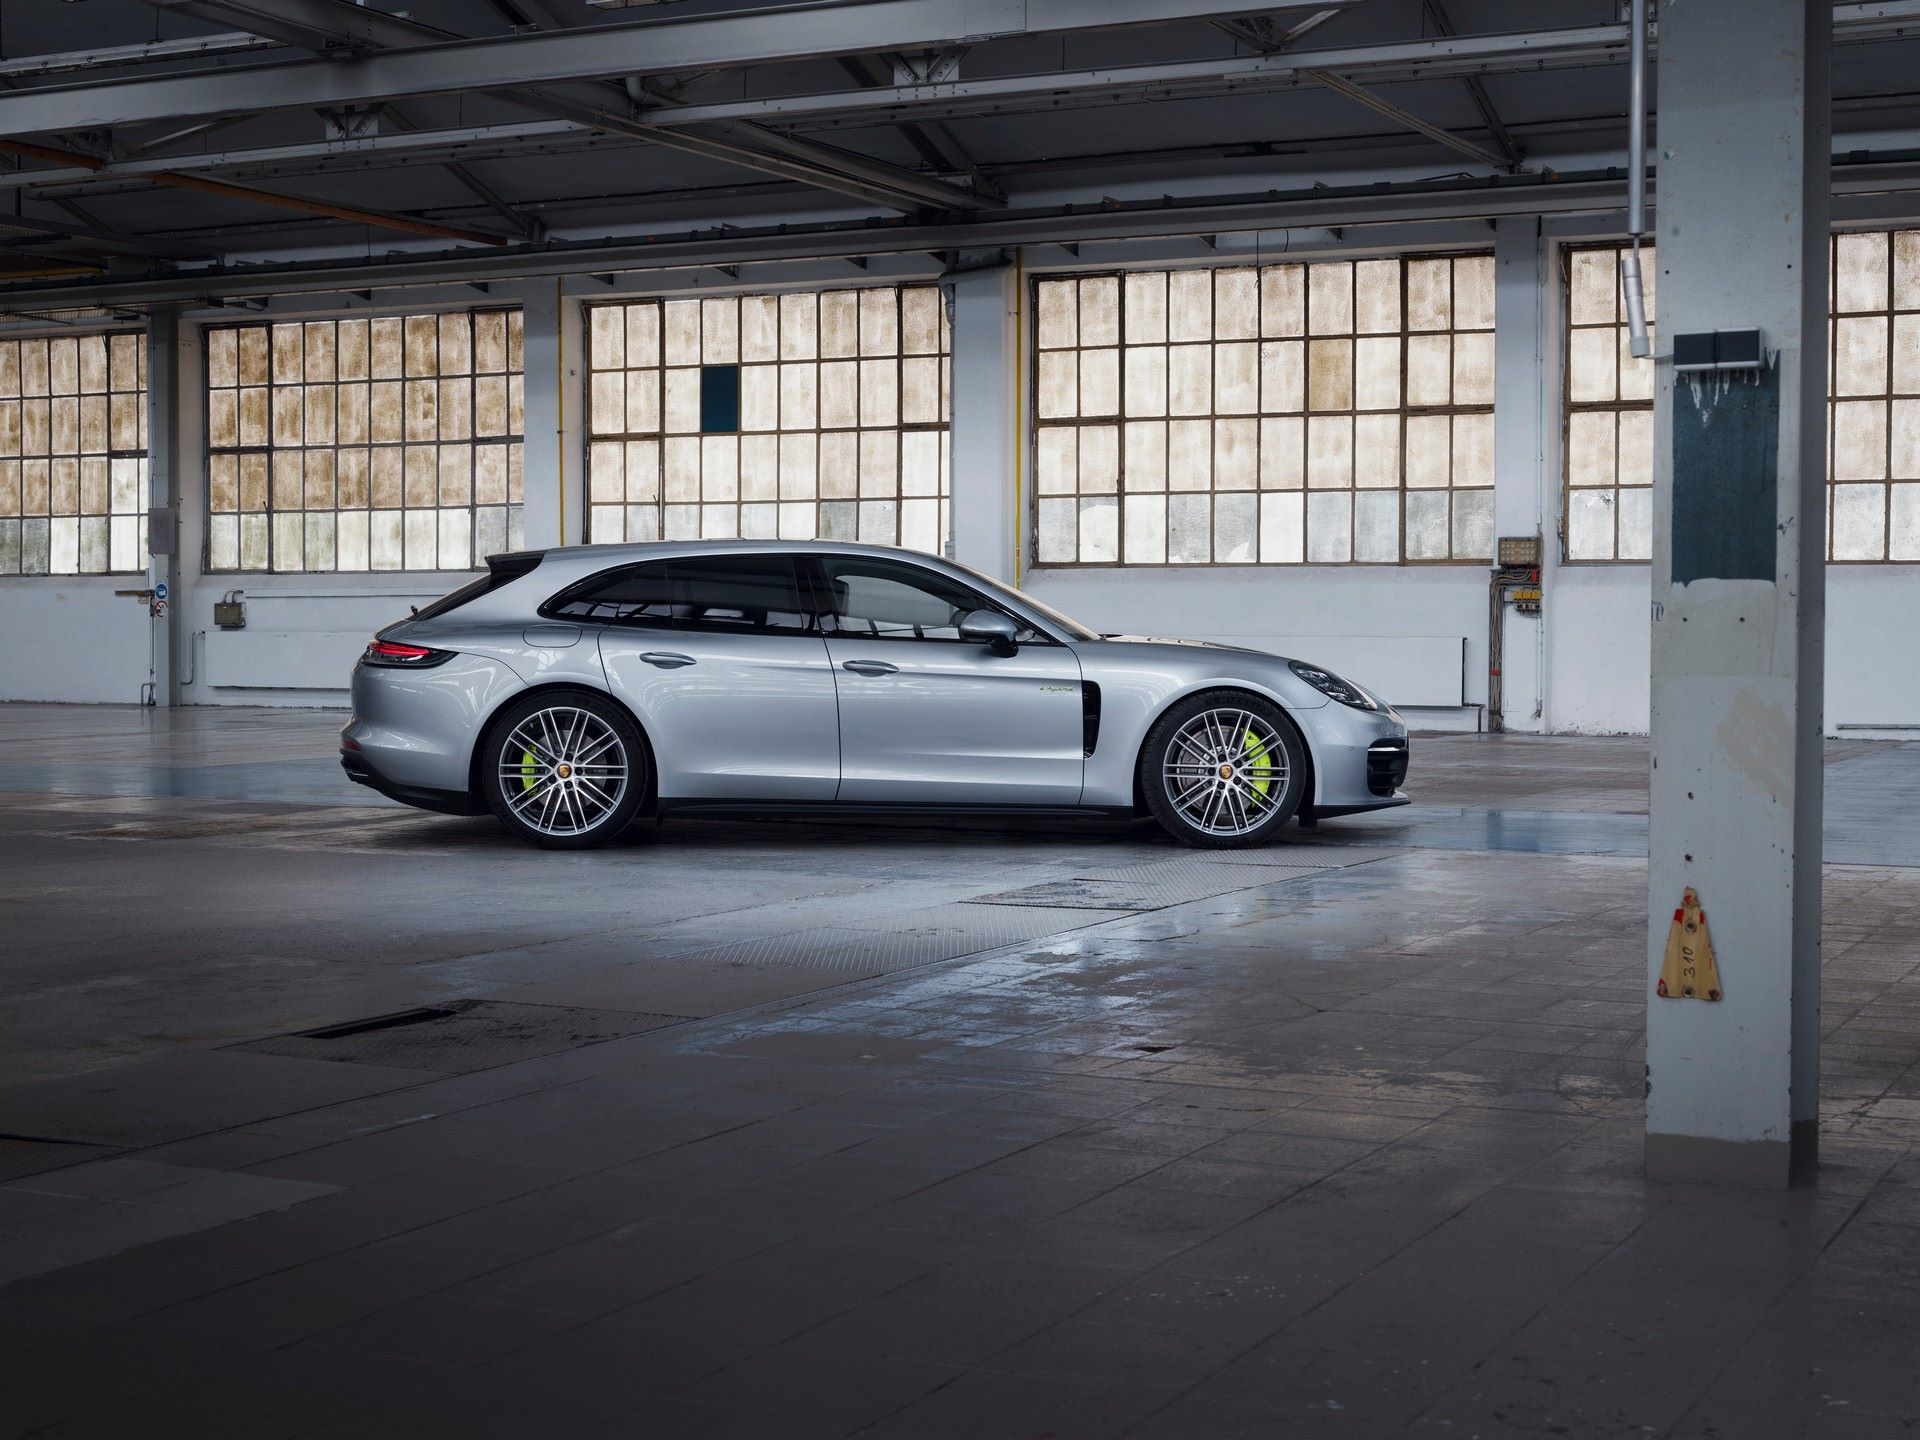 Porsche-Panamera-Turbo-S-E-Hybrid-4-E-Hybrid-and-4S-2021-5